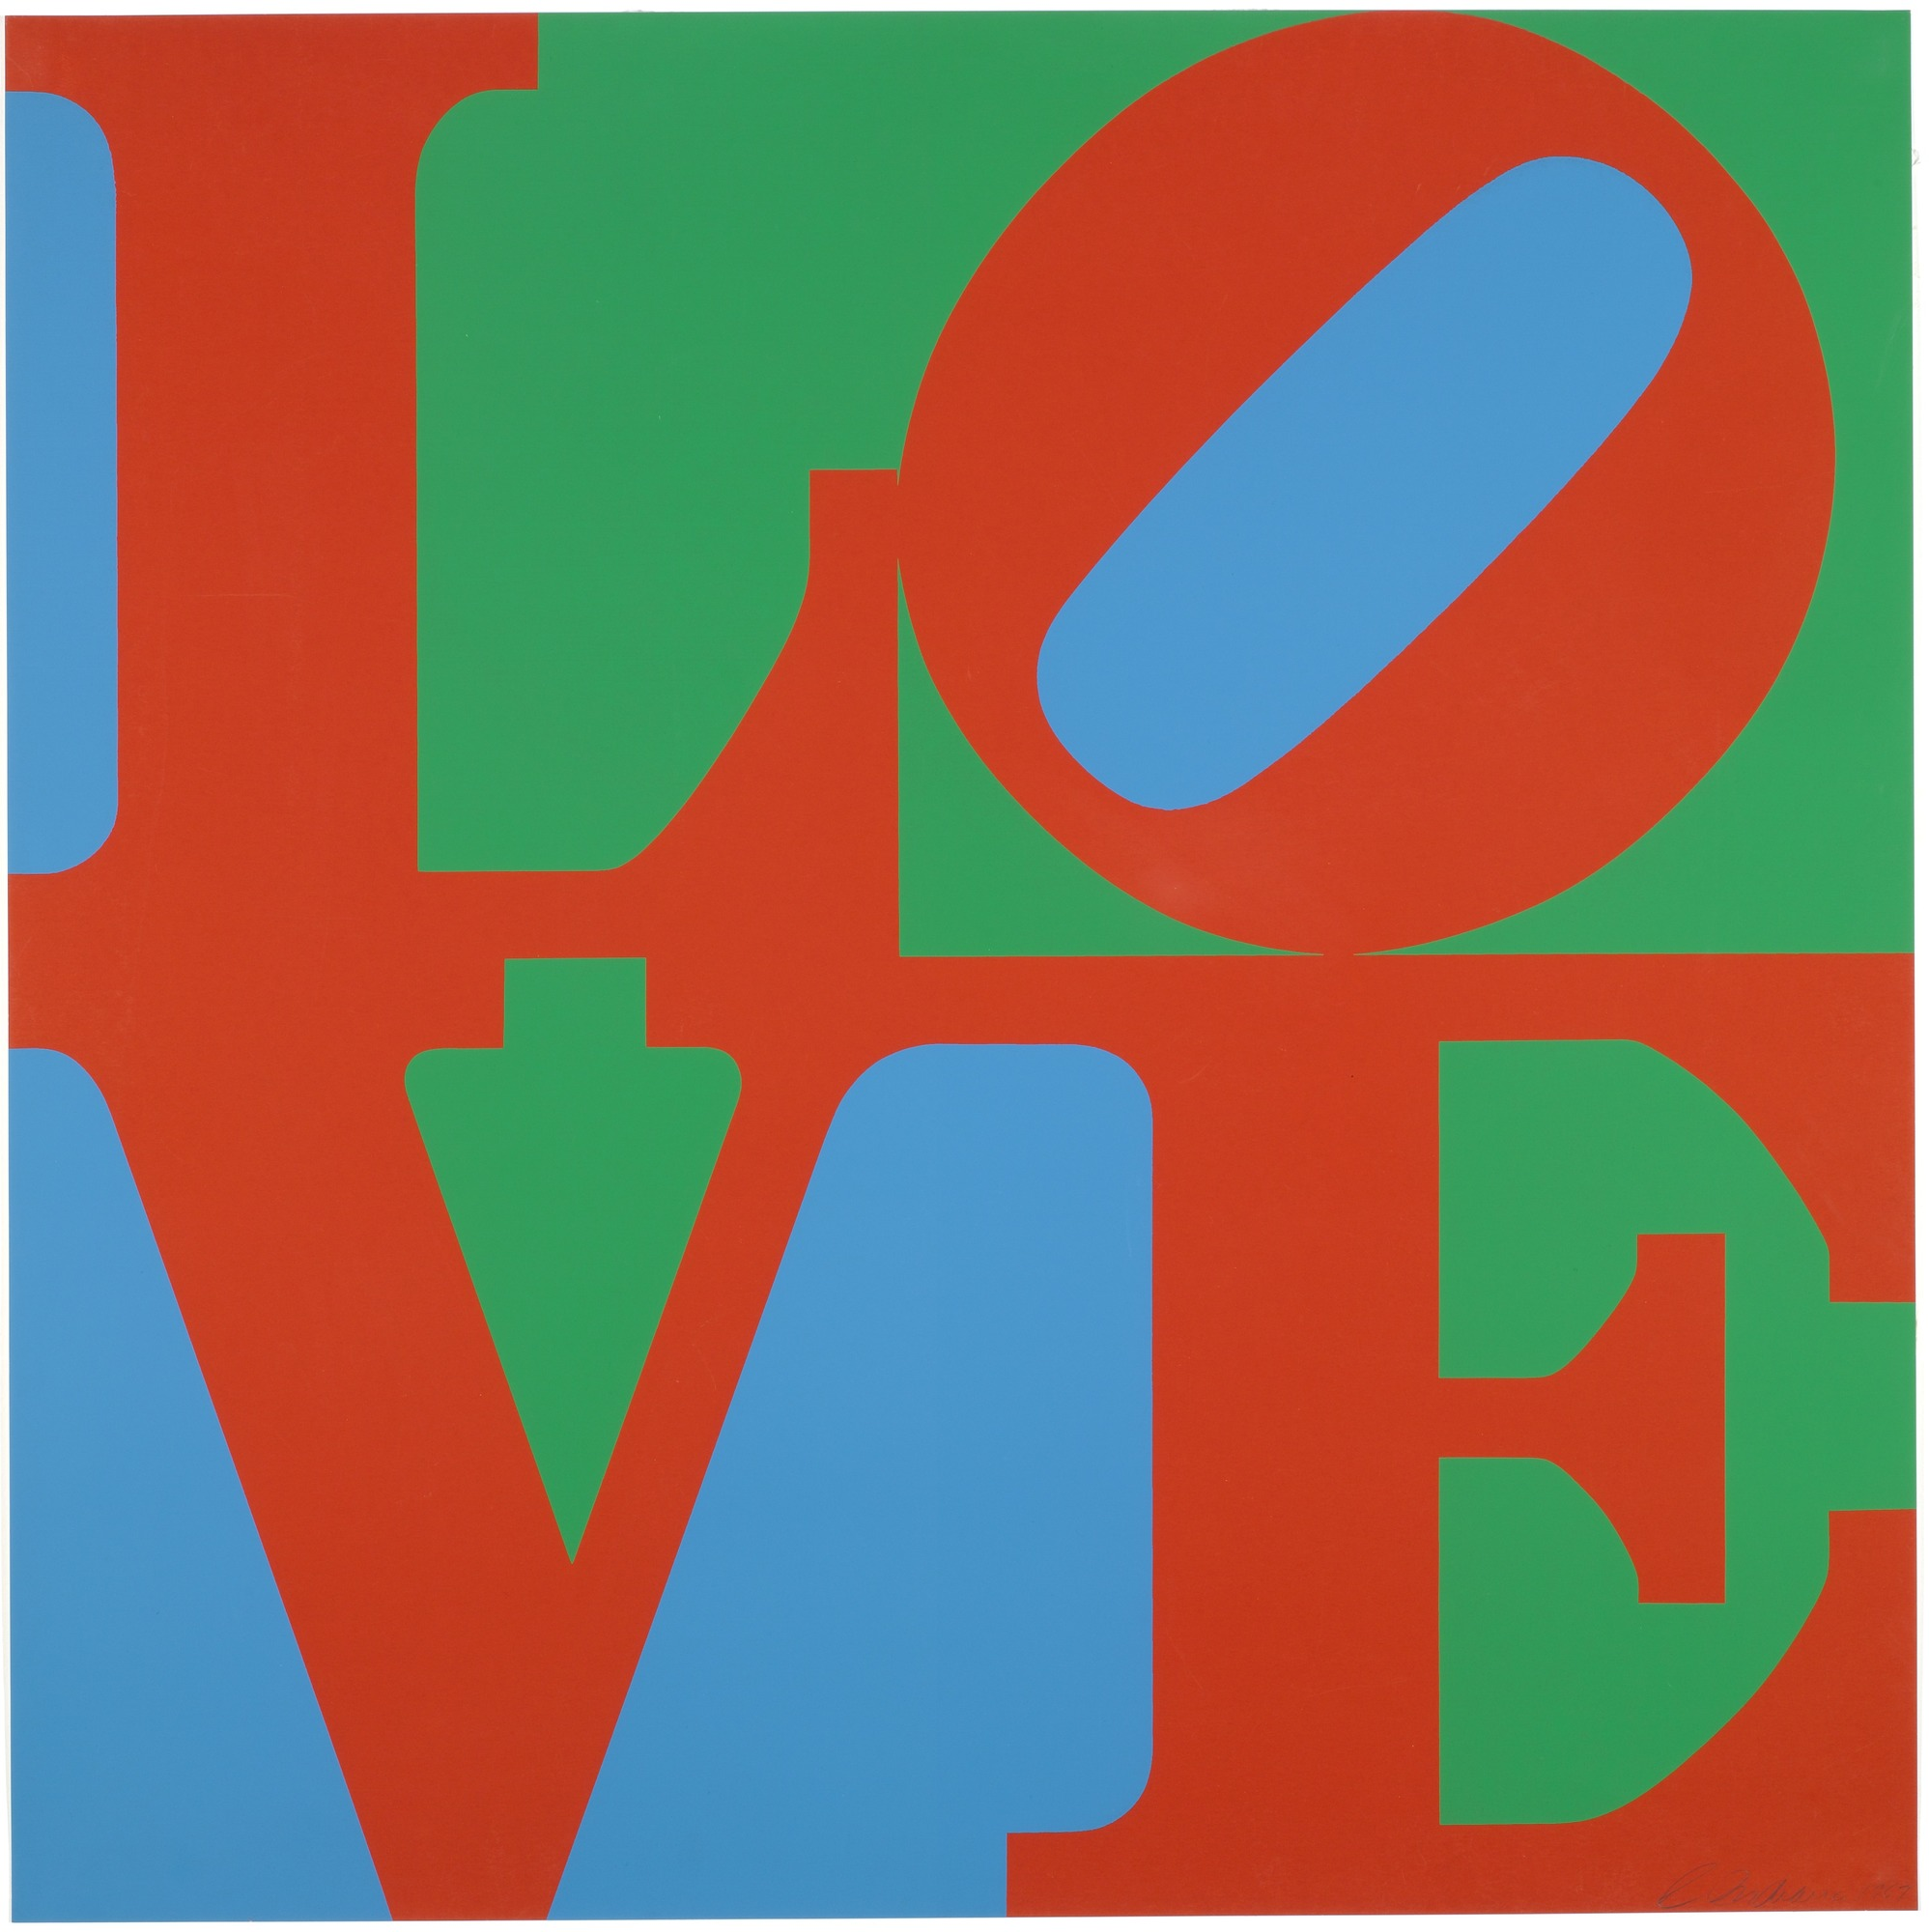 Robert Indiana's iconic LOVE artwork, and a Valentine's project for kids!